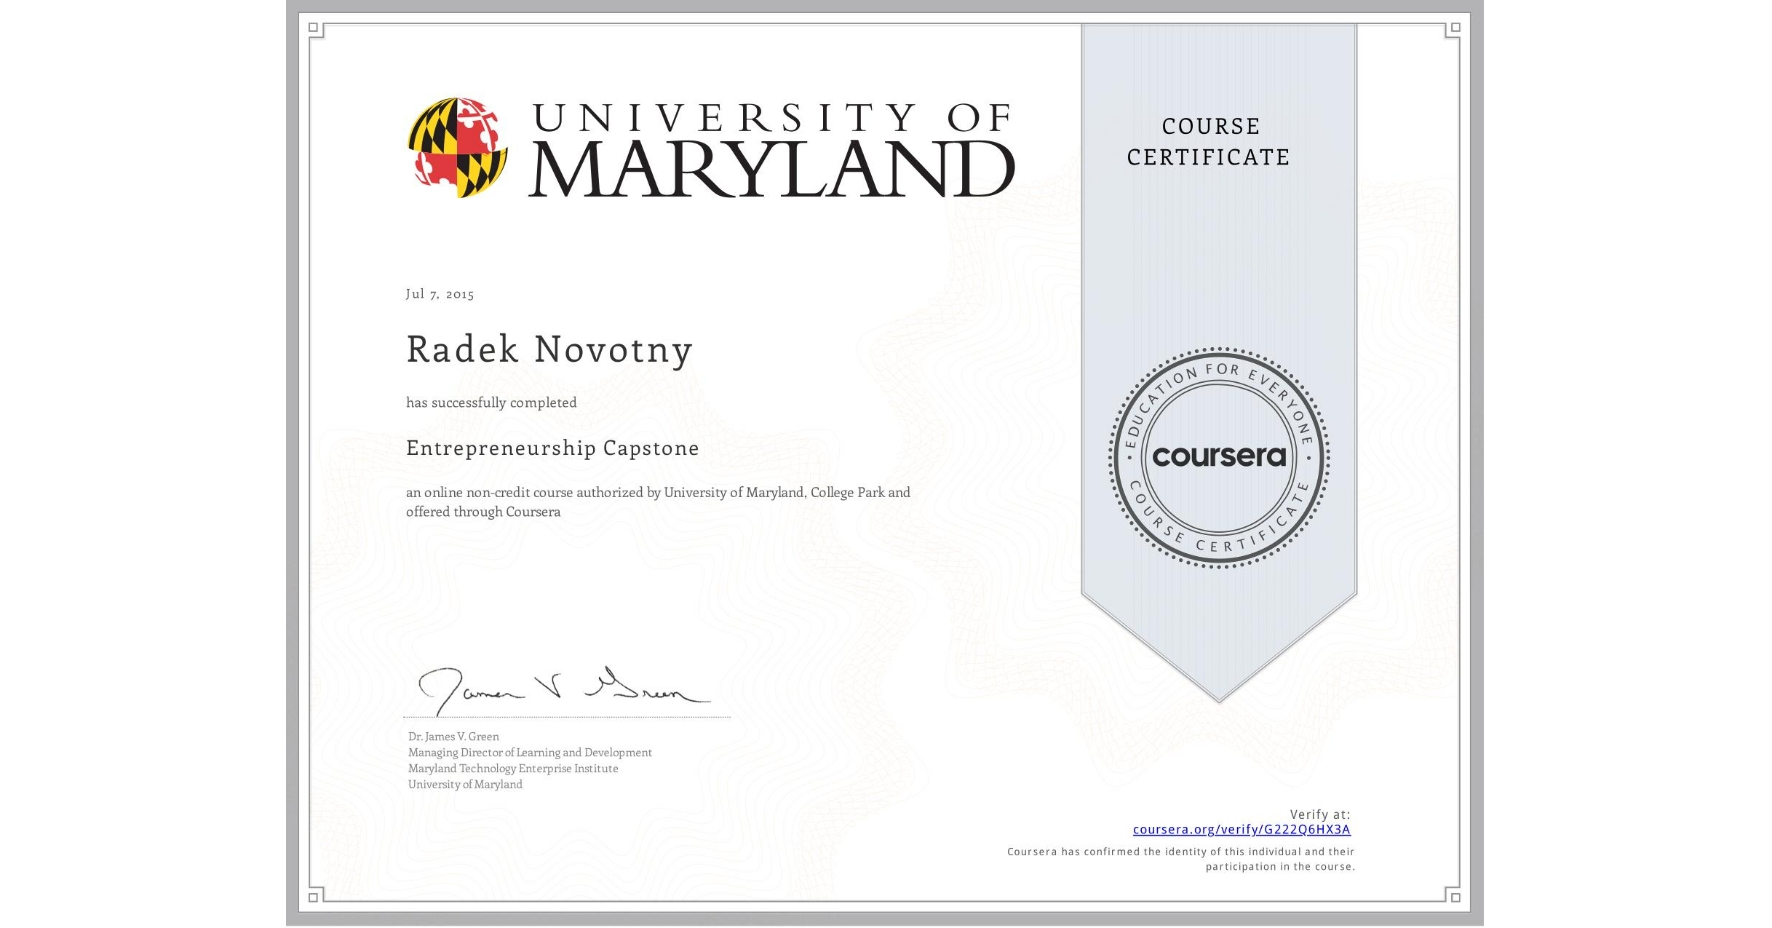 View certificate for Radek Novotny, Entrepreneurship Capstone , an online non-credit course authorized by University of Maryland, College Park and offered through Coursera